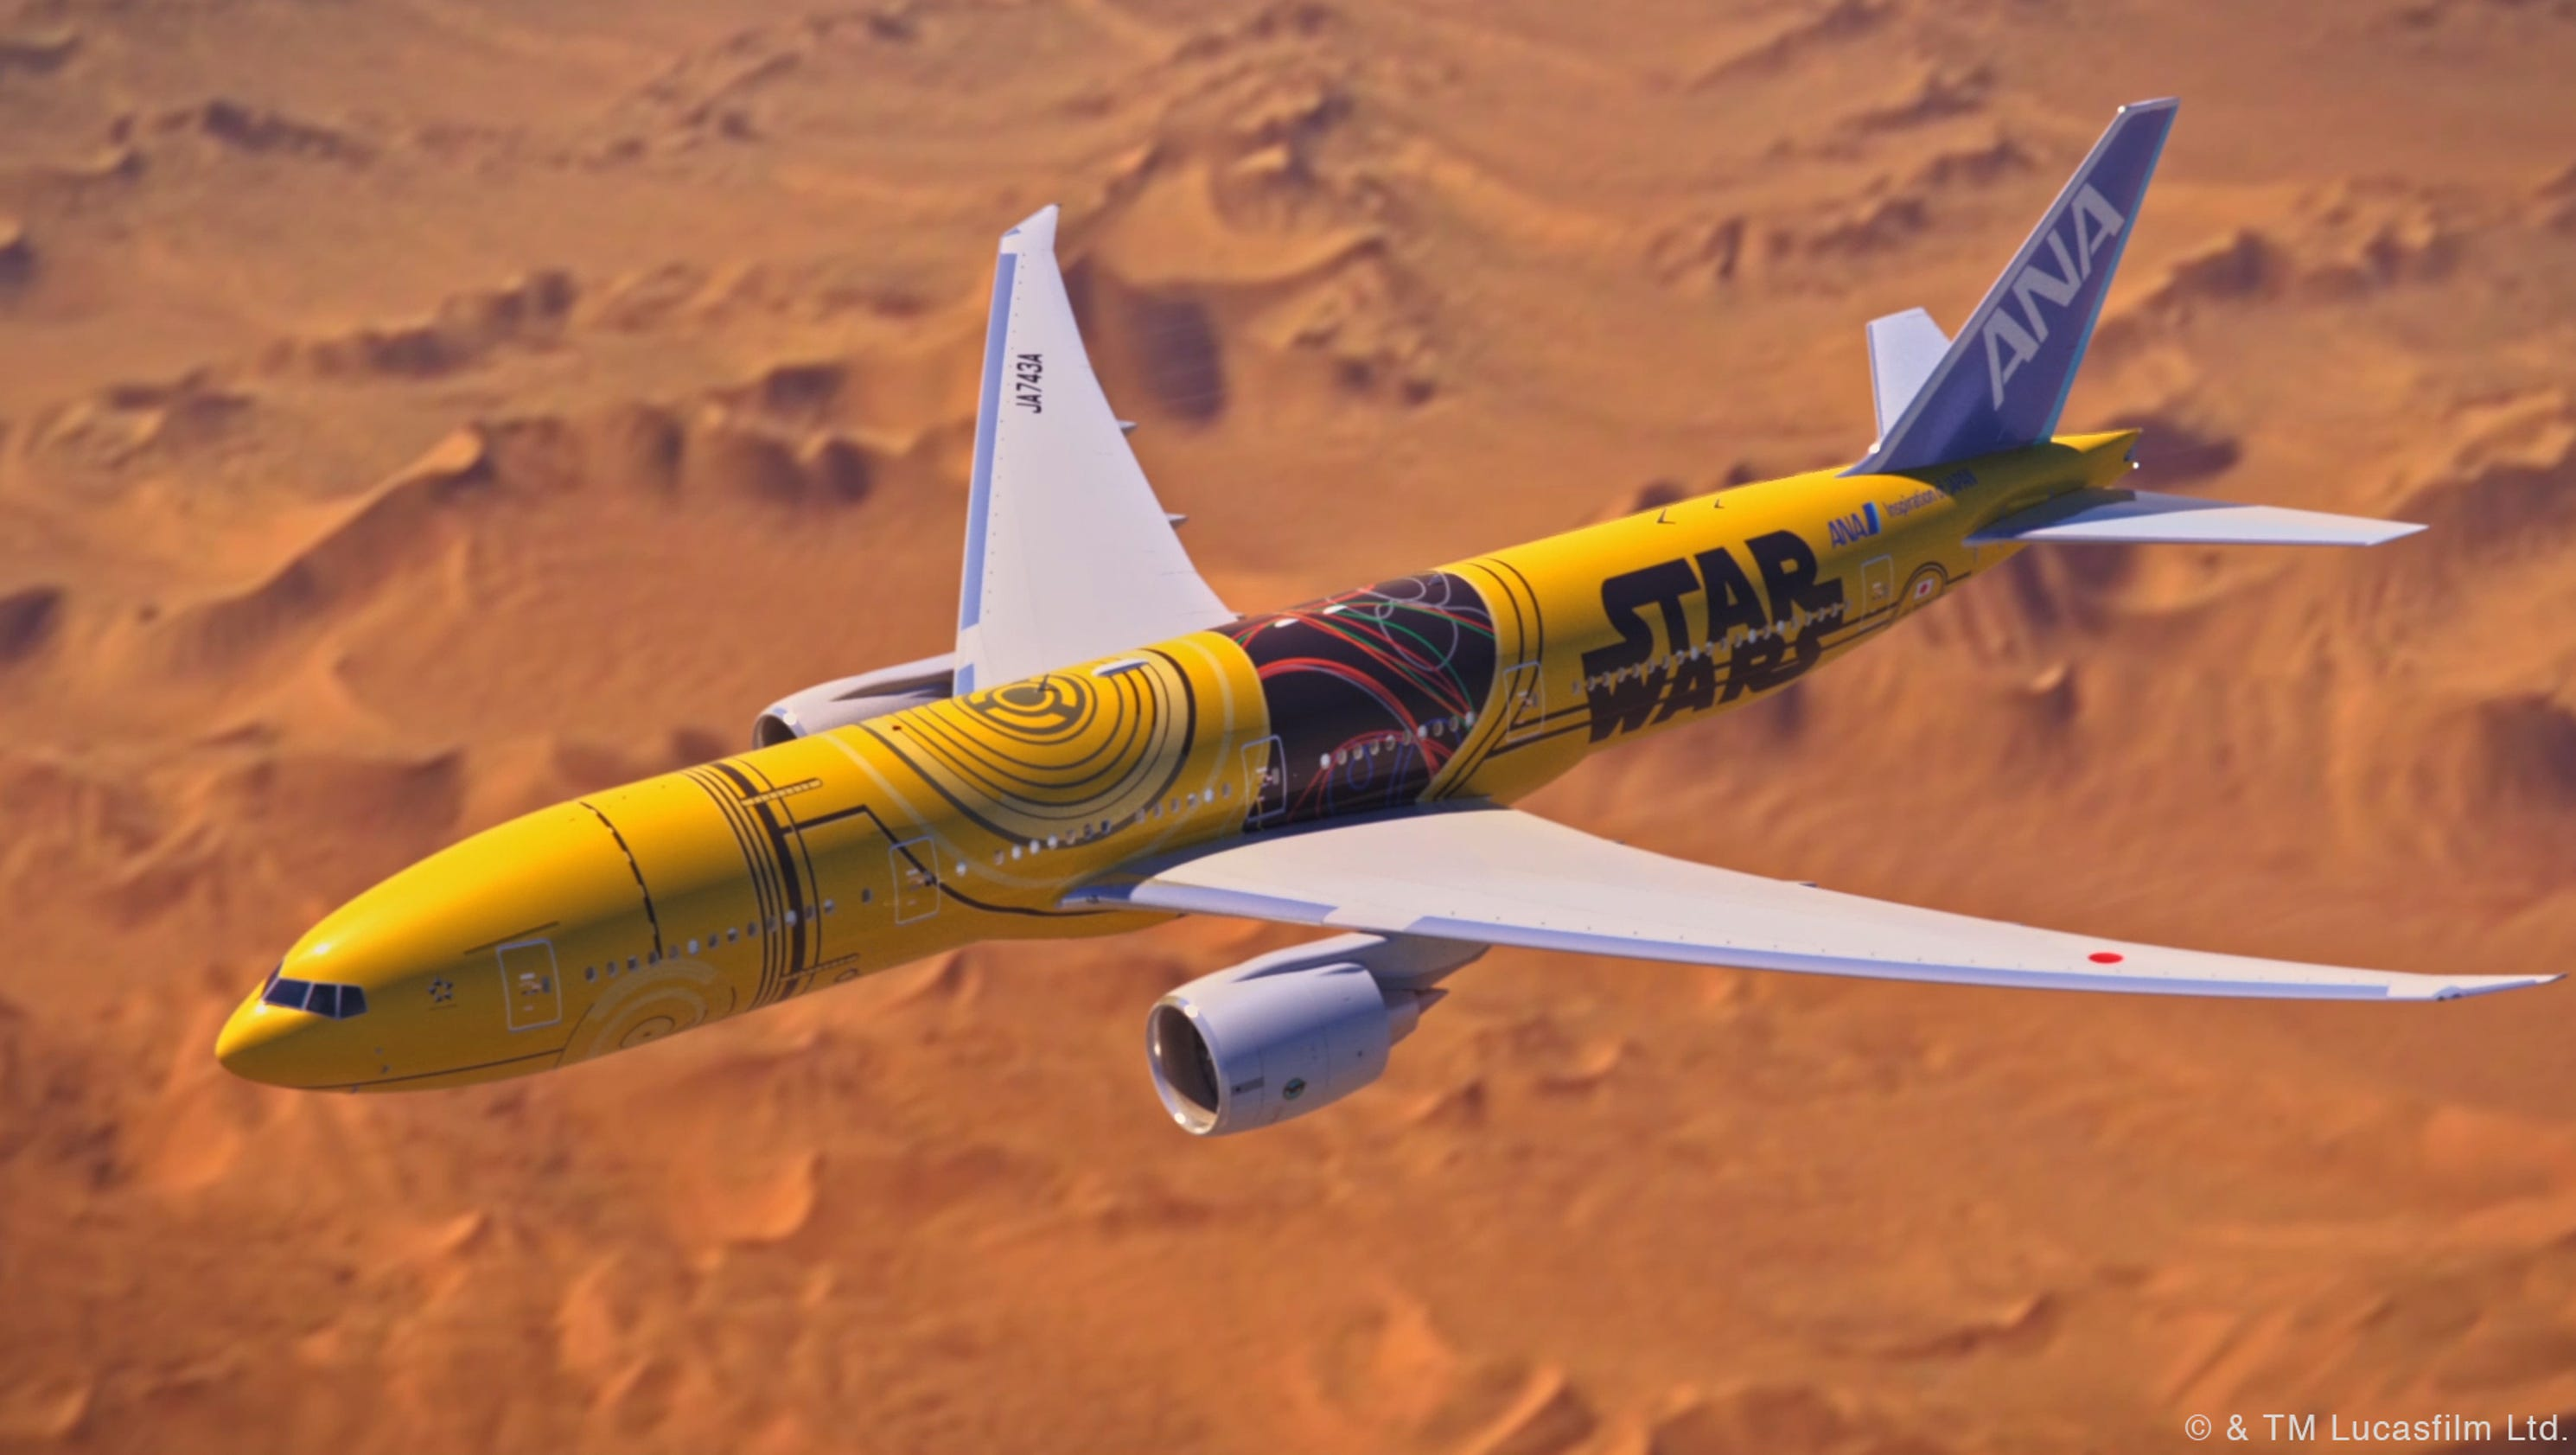 Best Selling Paint Ana To Roll Out Boeing 777 Painted Like Star Wars Droid C 3po